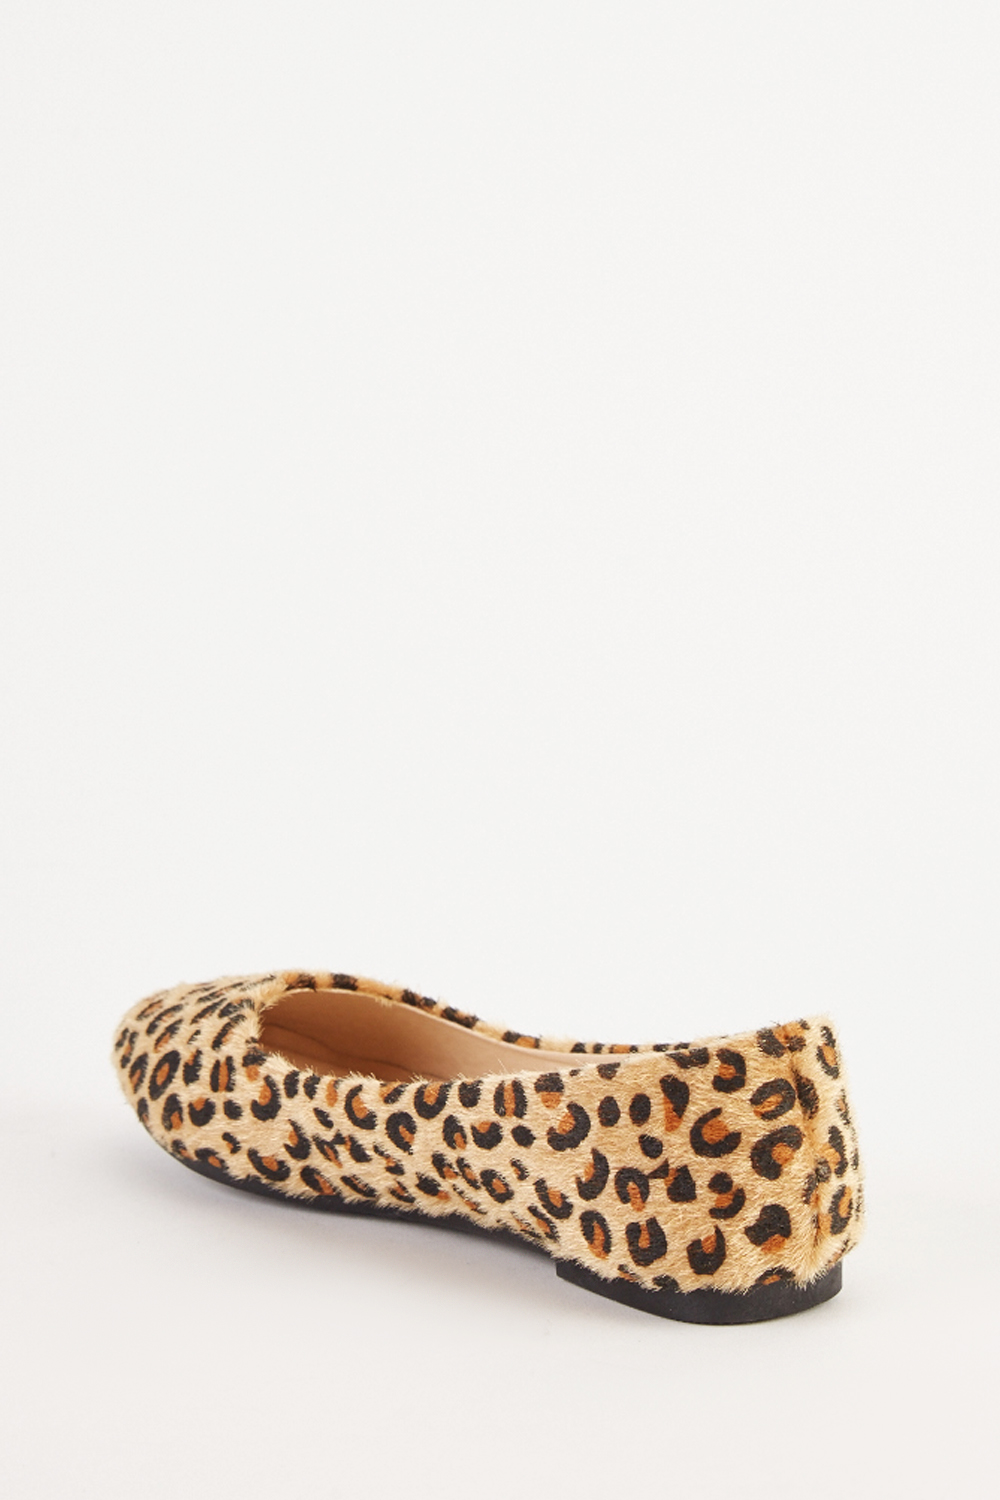 4494dd2526c9 Slip-On Leopard Flat Pumps. Click on the image to zoom